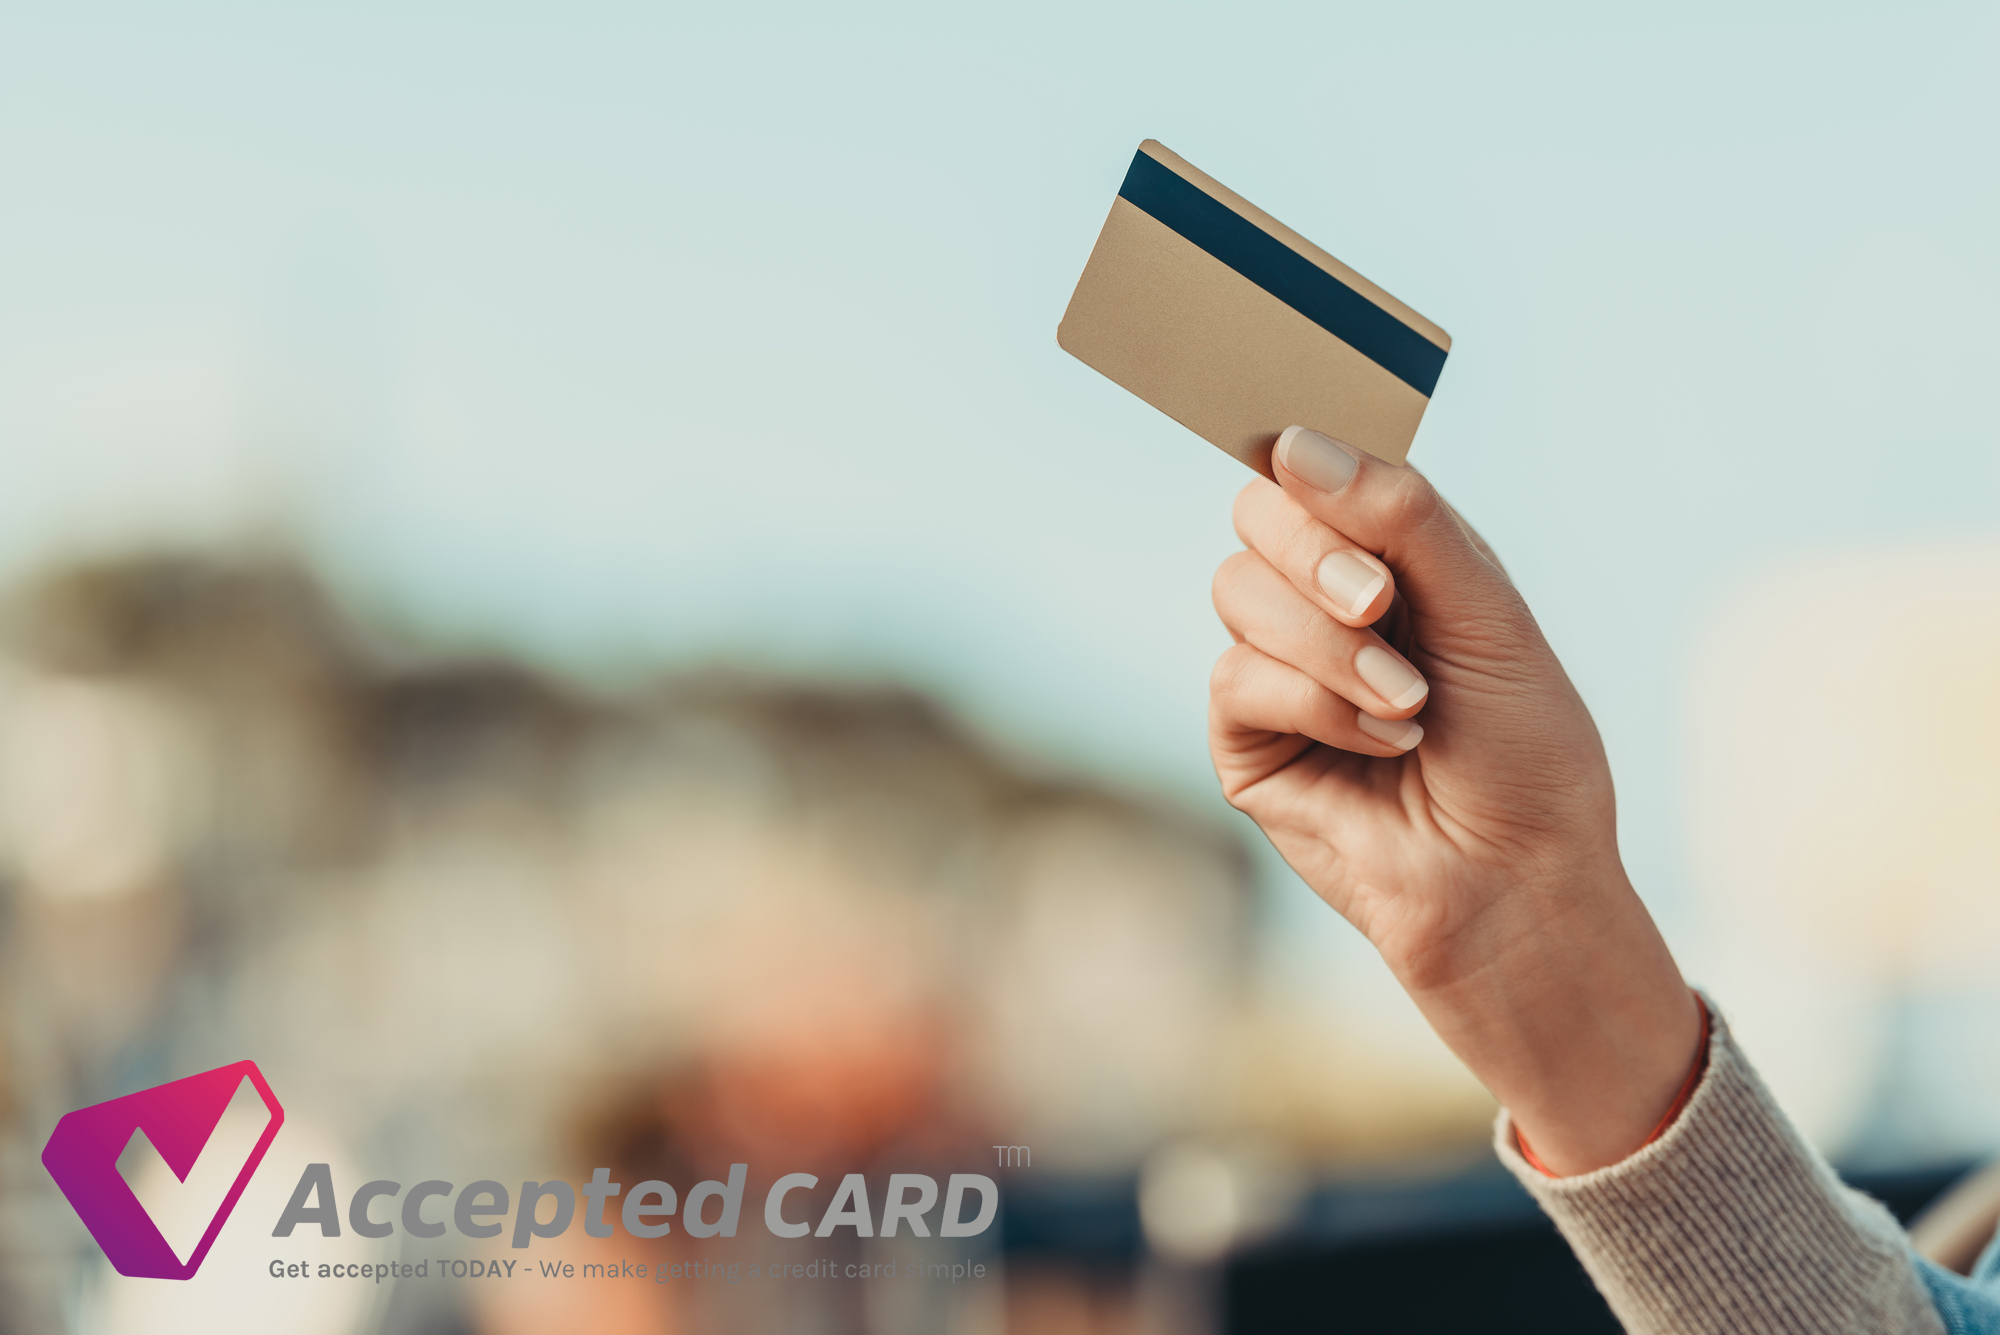 Available credit cards for bad credit Accepted Credit Card UK